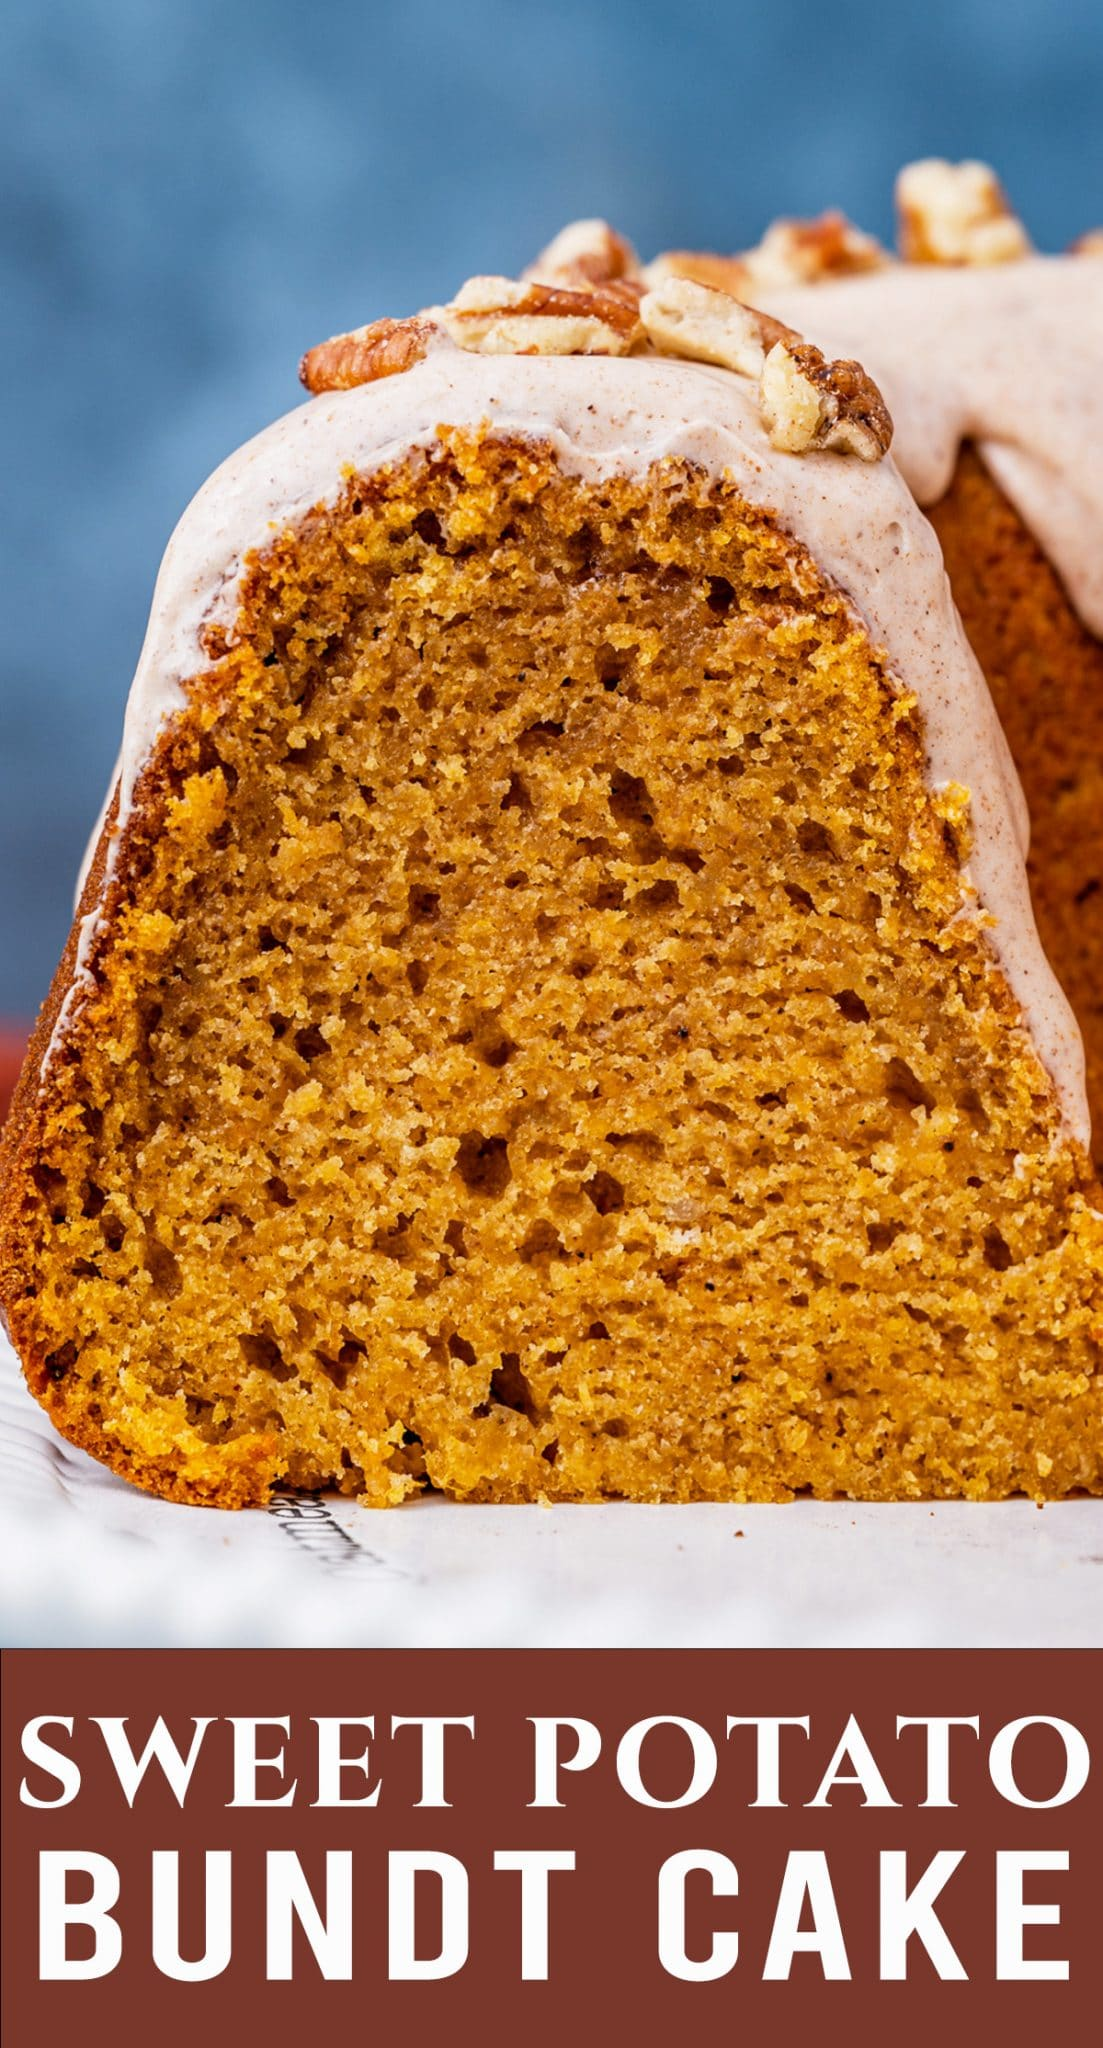 Old Fashioned Sweet Potato Bundt Cake is delicious and comforting. Features real mashed sweet potatoes and a cinnamon sugar glaze. via @thebestcakerecipes